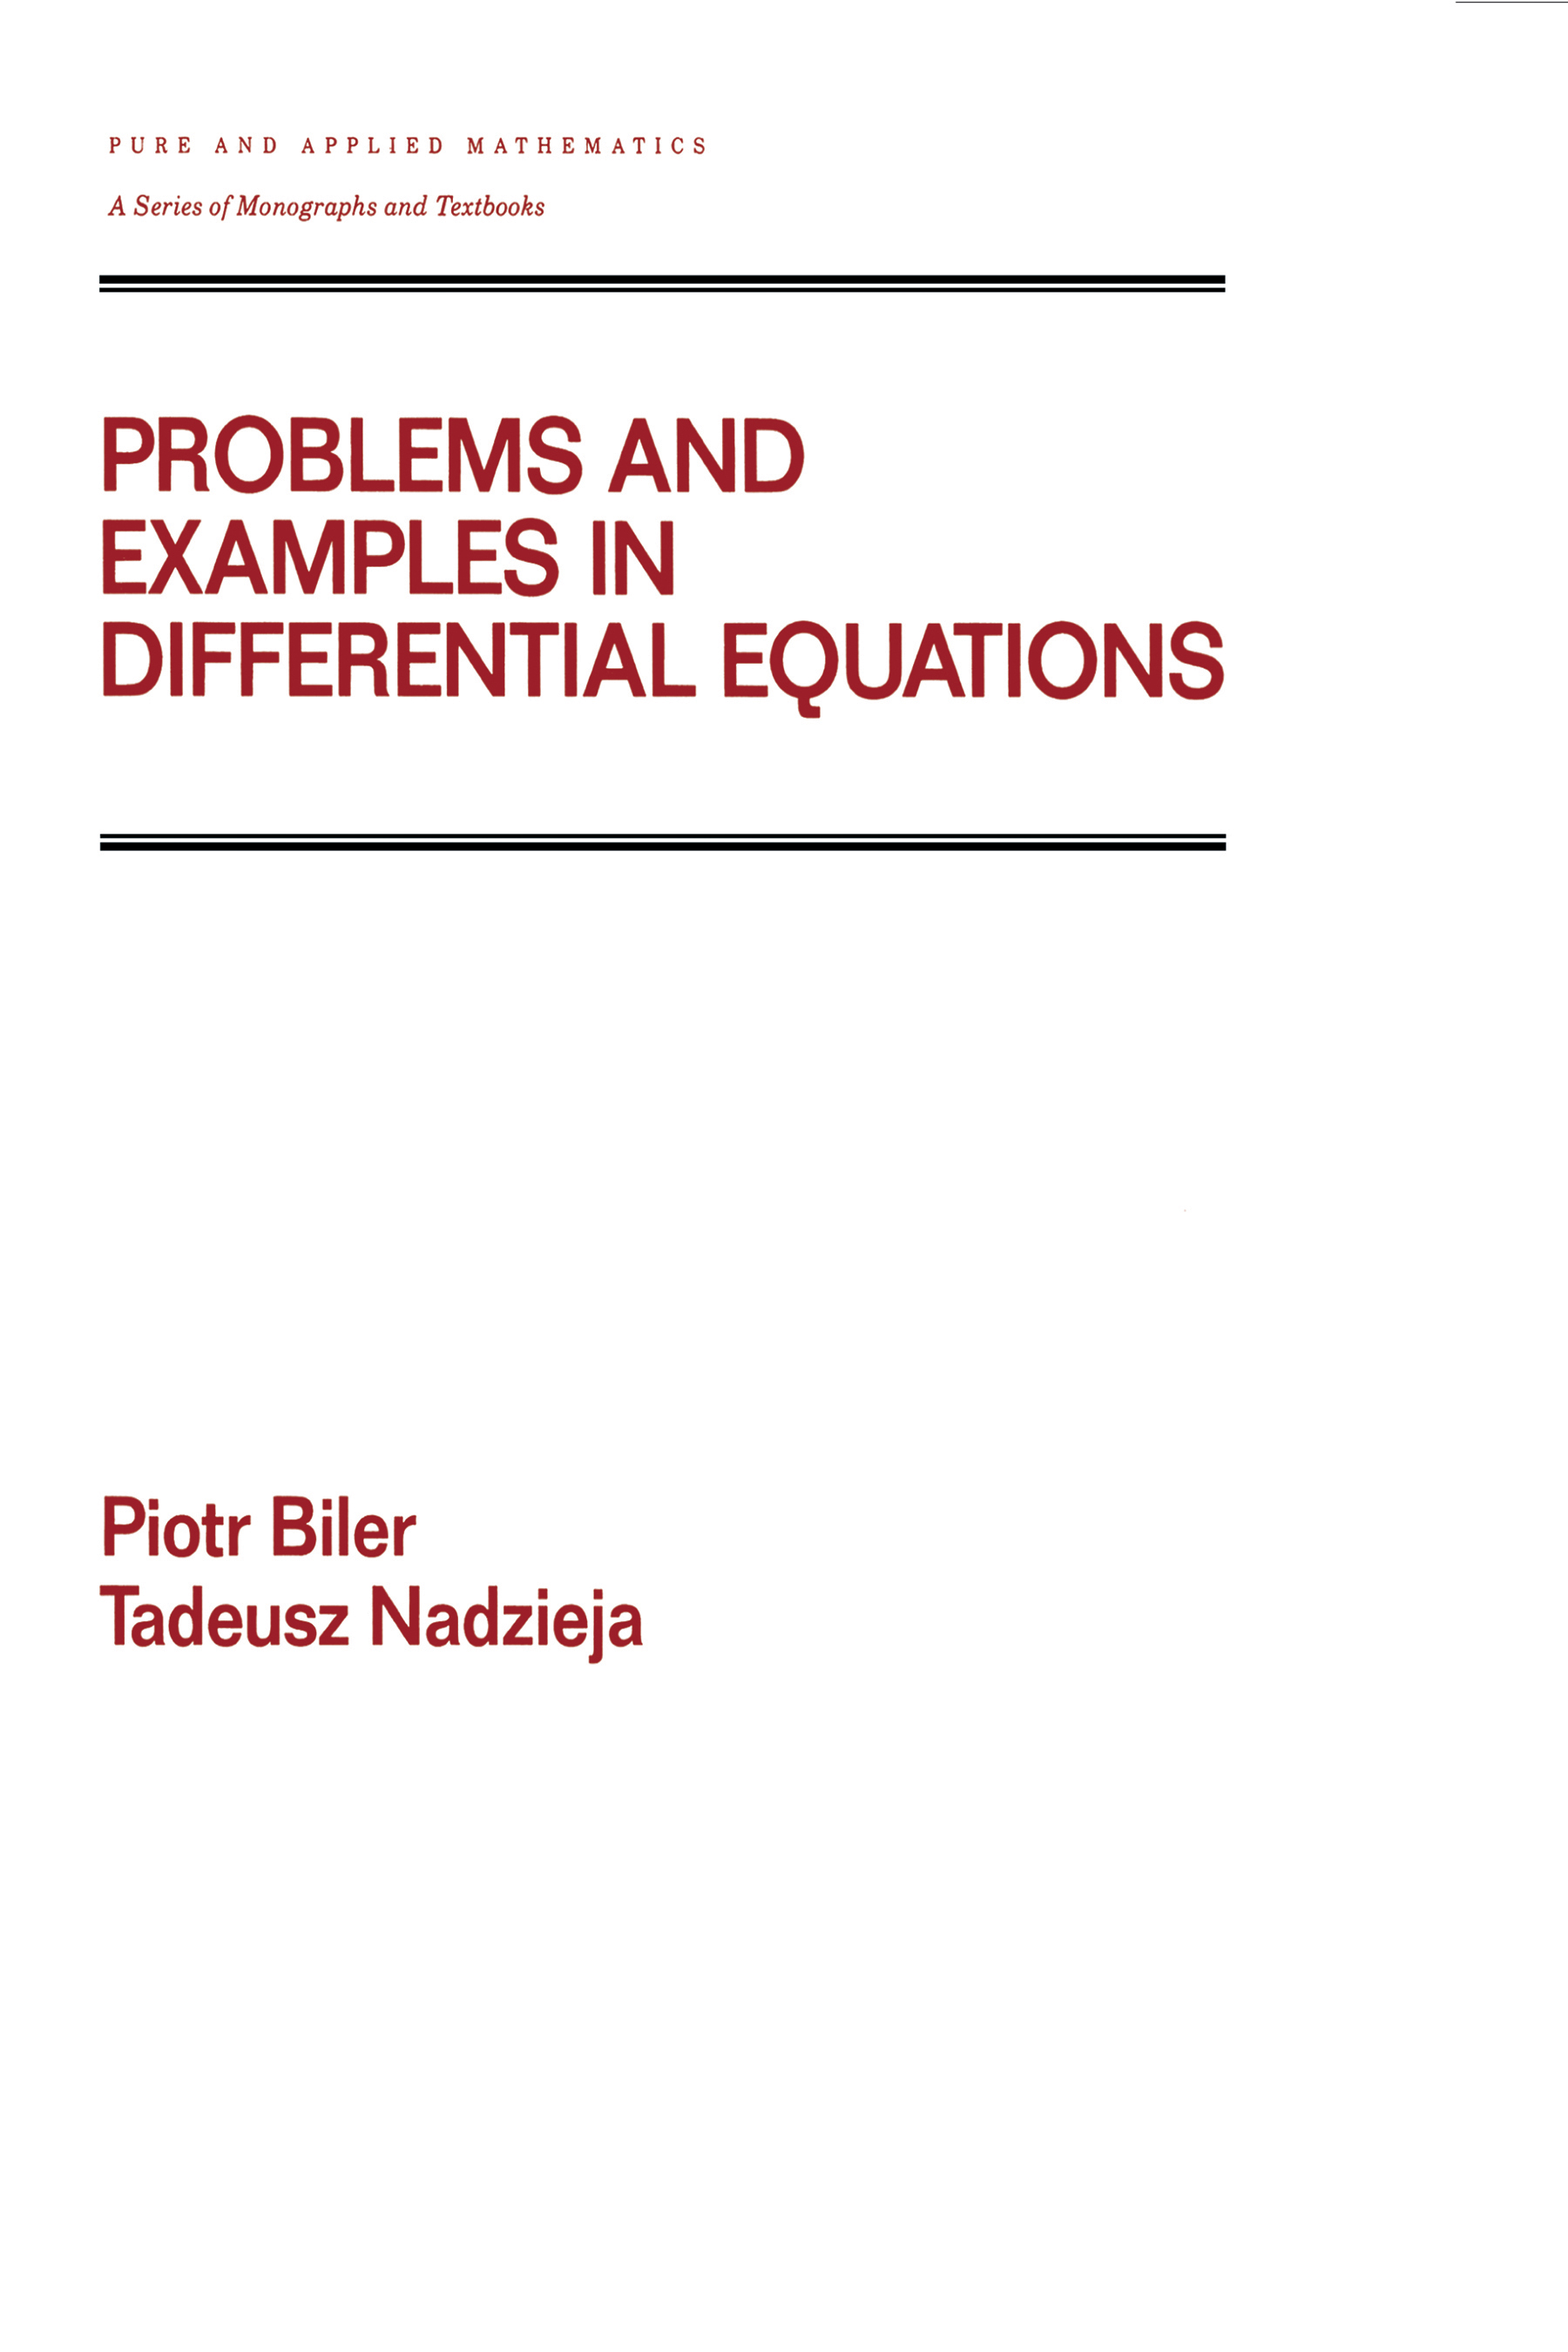 Problems and Examples in Differential Equations